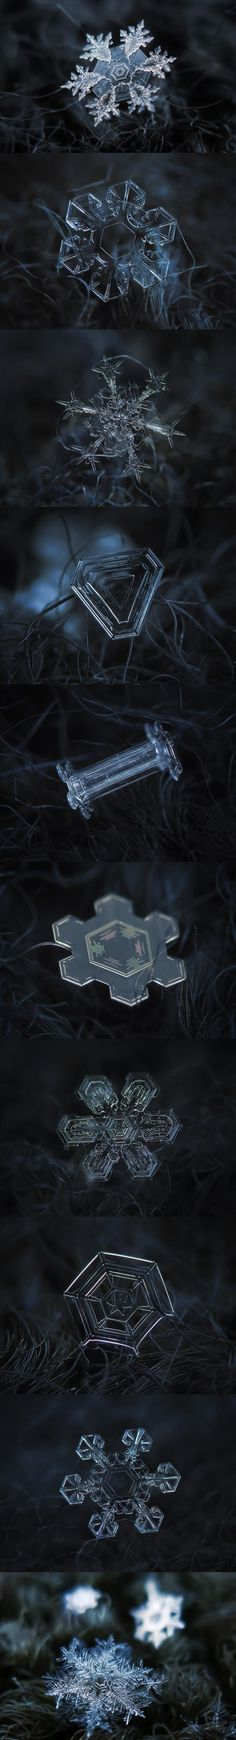 Snowflakes Under a Microscope